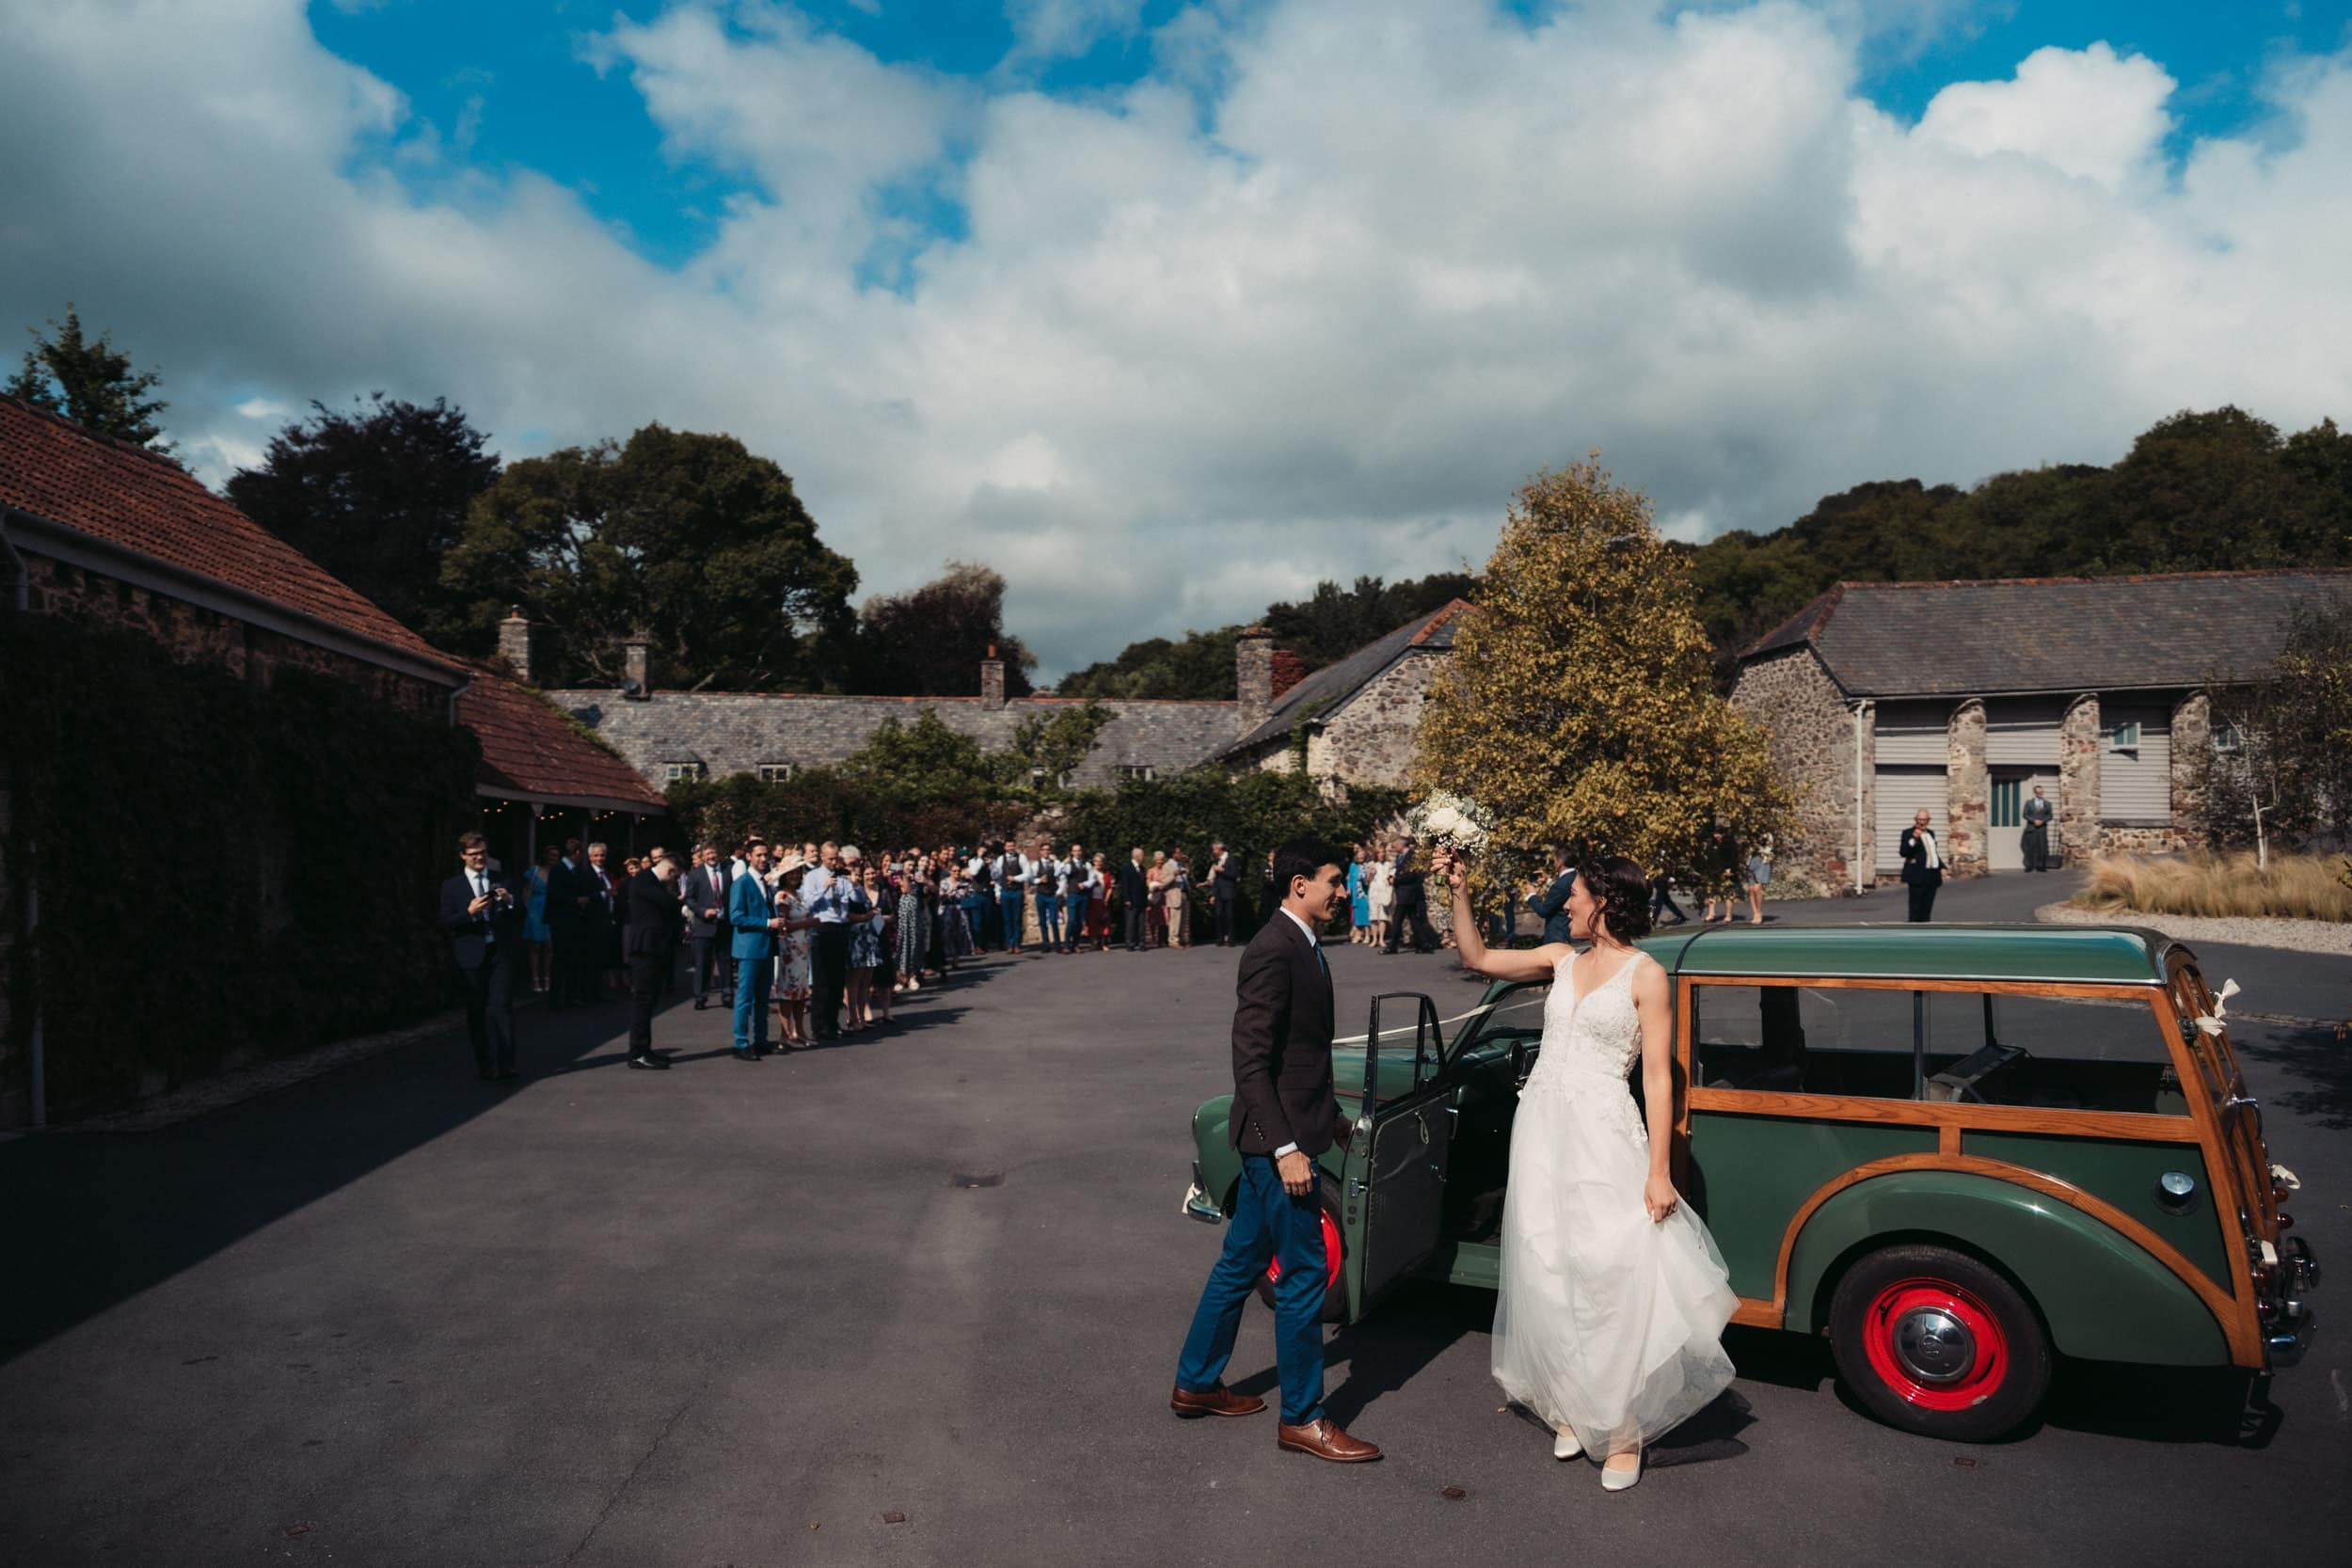 bride and groom getting out of Morris minor